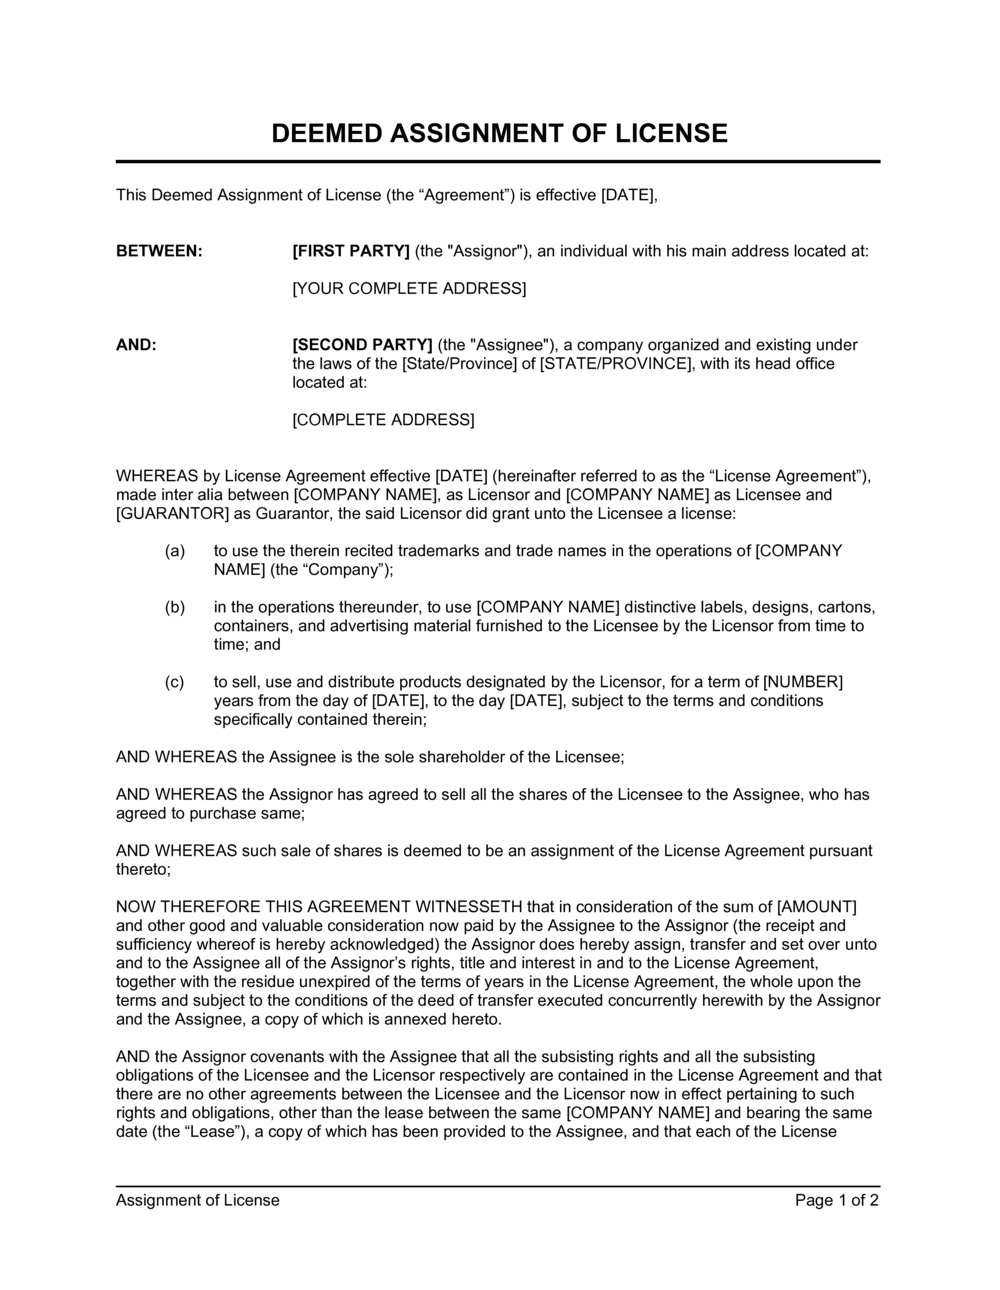 Business-in-a-Box's Assignment of License Template